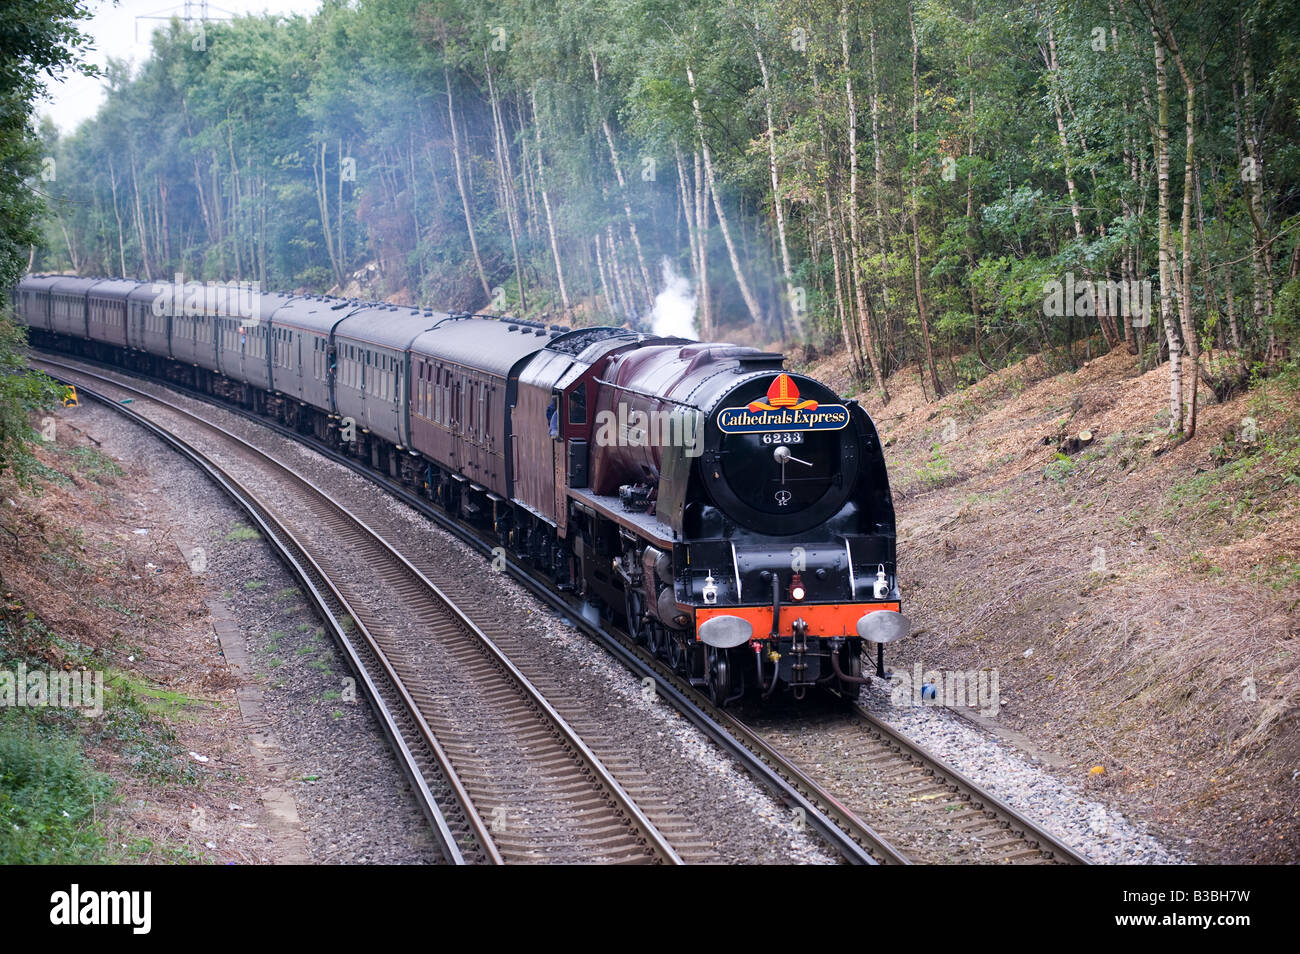 Duchess of Sutherland hauling The Cathedrals Express - Stock Image